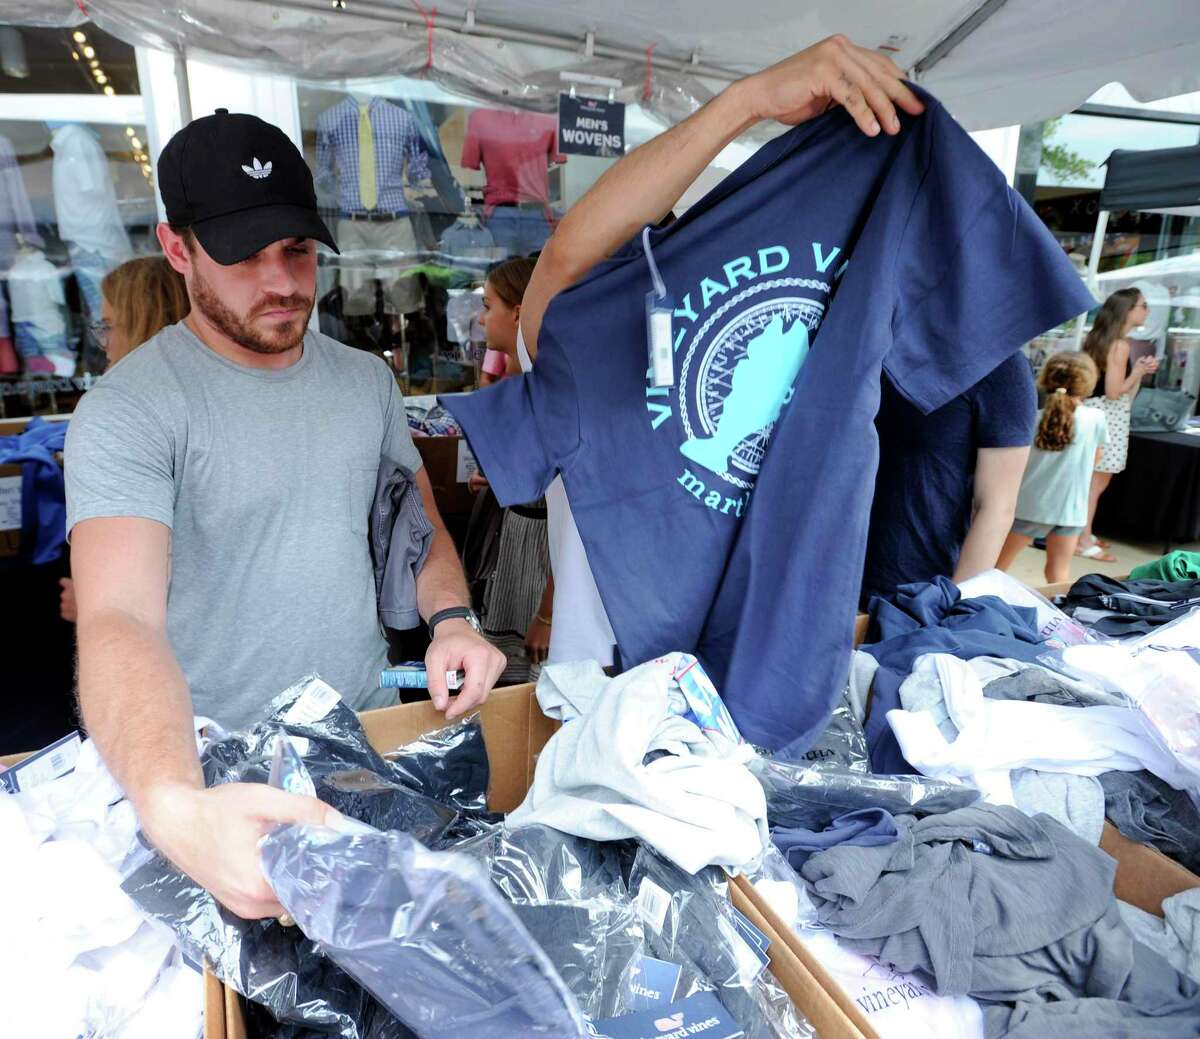 Austin West of Dallas hunts for a bargain at Vineyard Vines as he shops local retailers during the Chamber of Commerce Sidewalk Sales Day in Greenwich, Conn. on July 11, 2019.